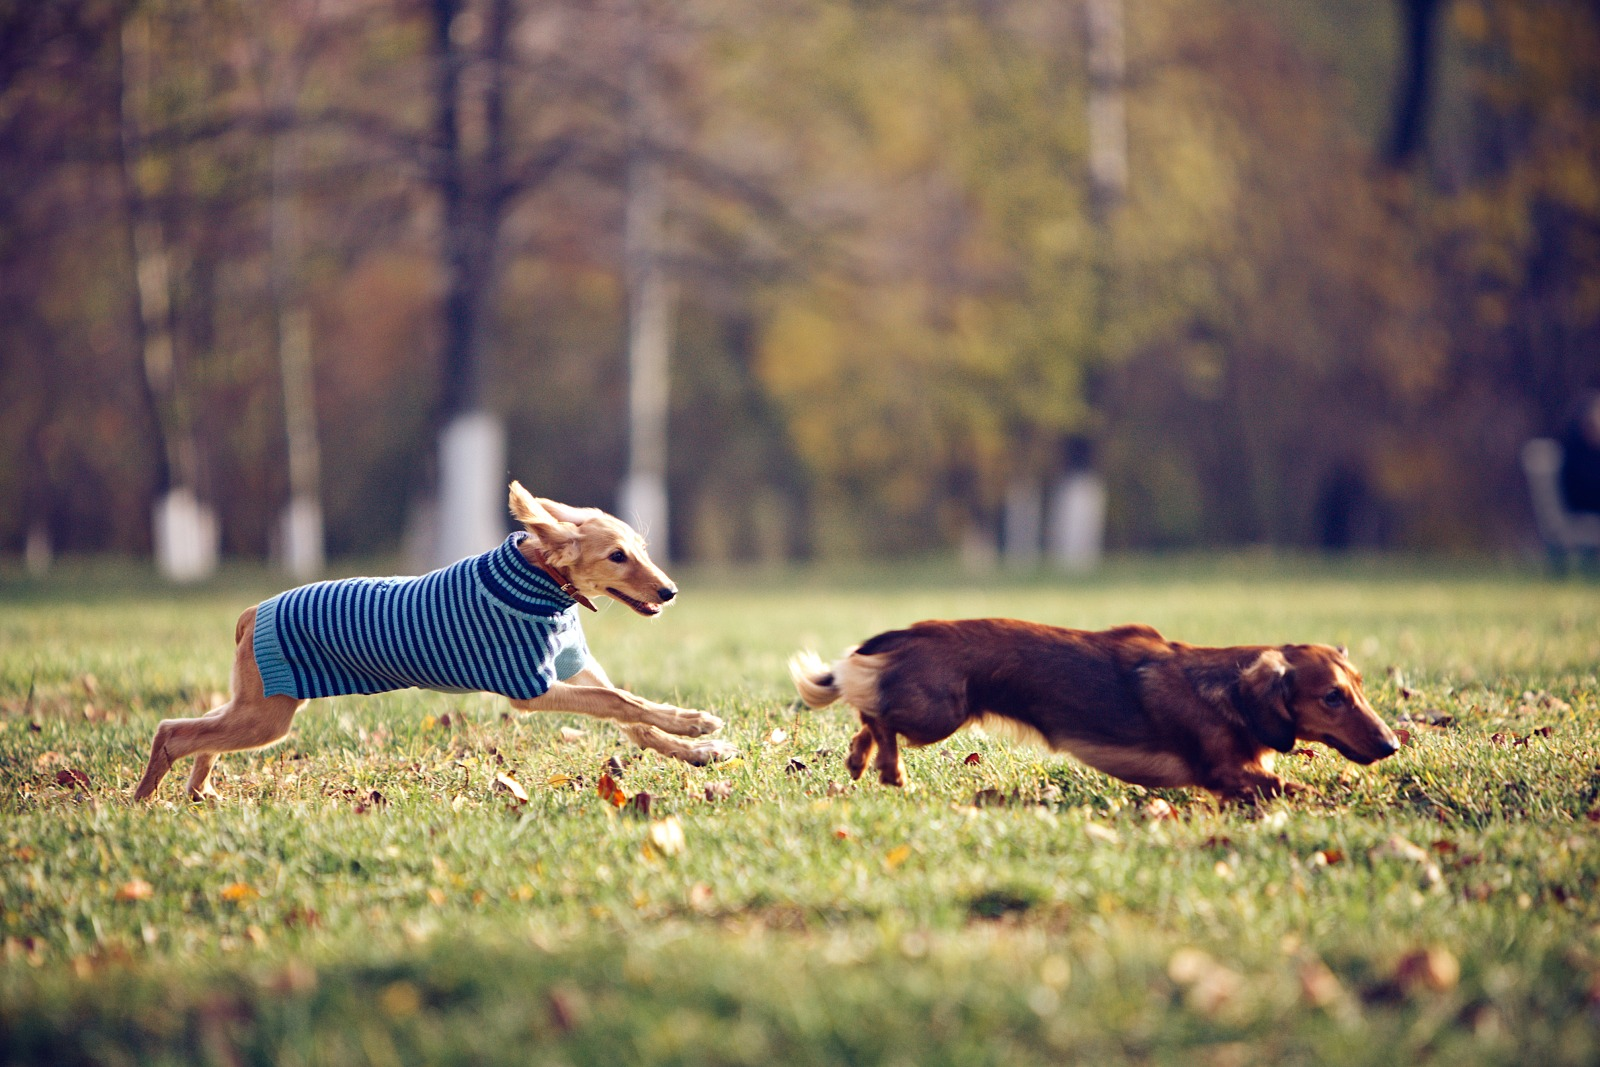 Dessi the dachshund and Tsiri the saluki is running in a park